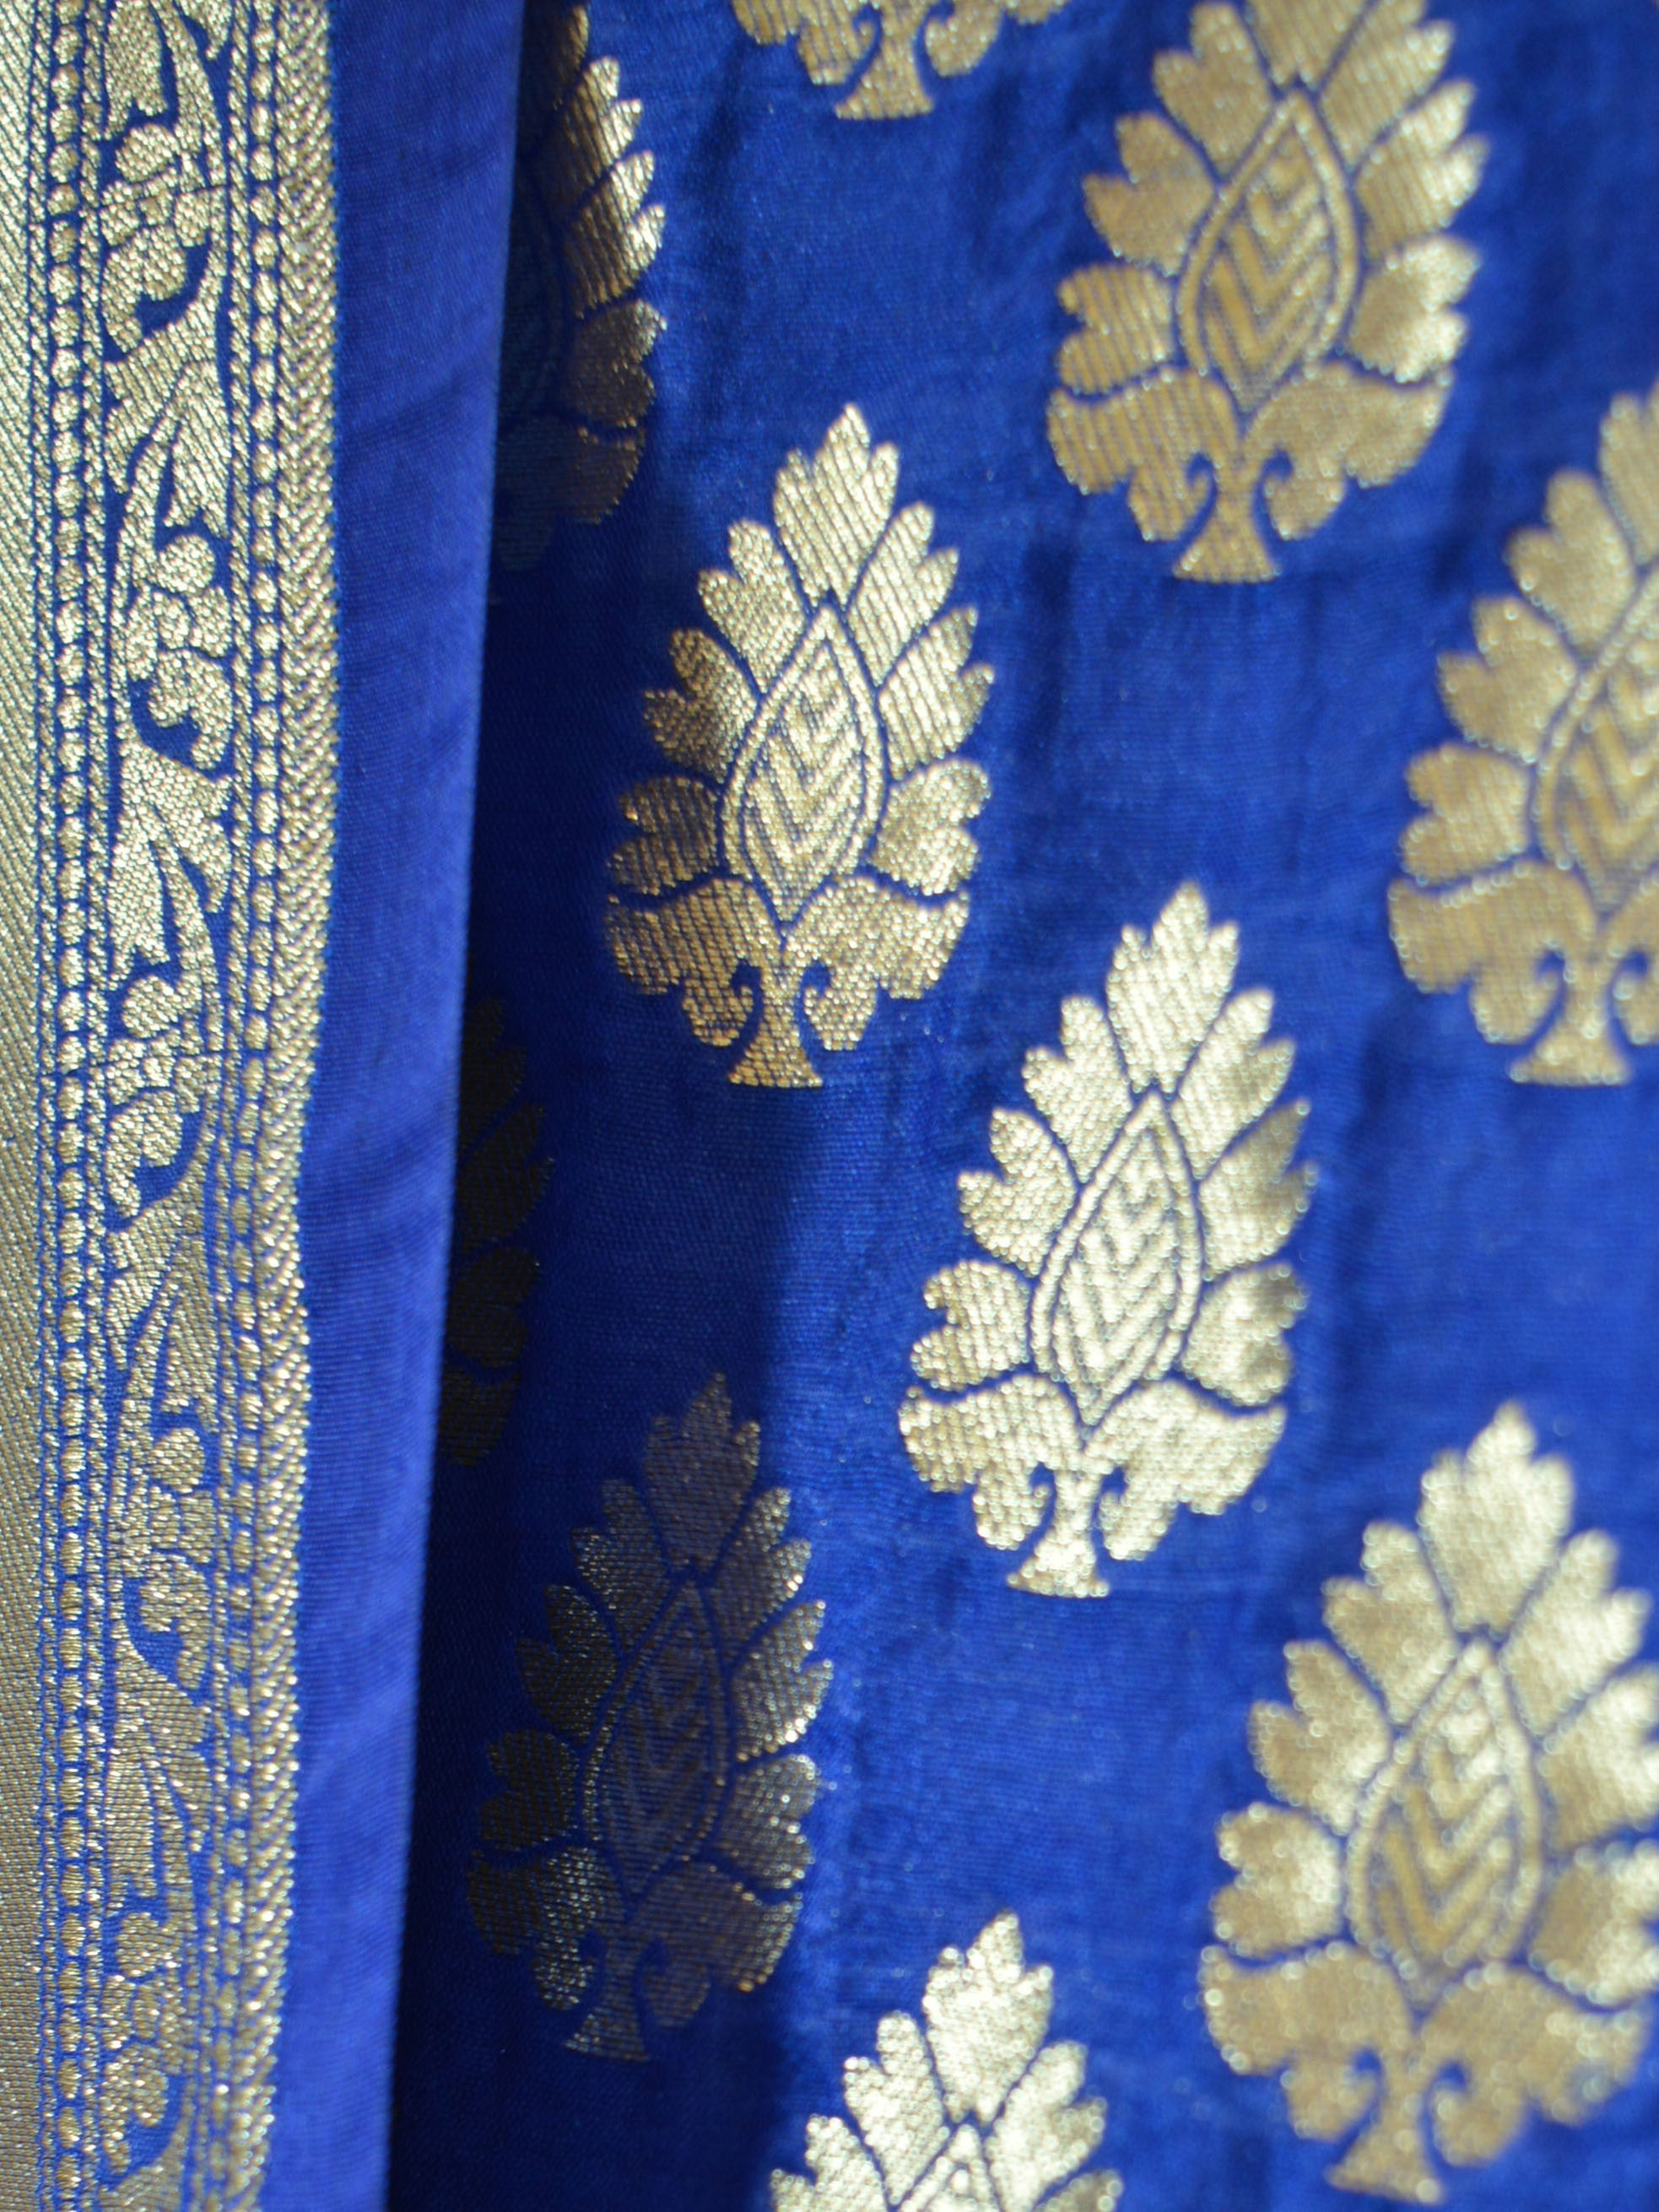 Banarasi Salwar Kameez Semi Katan Silk Zari Buta Work Fabric With Jaal Dupatta-Royal Blue